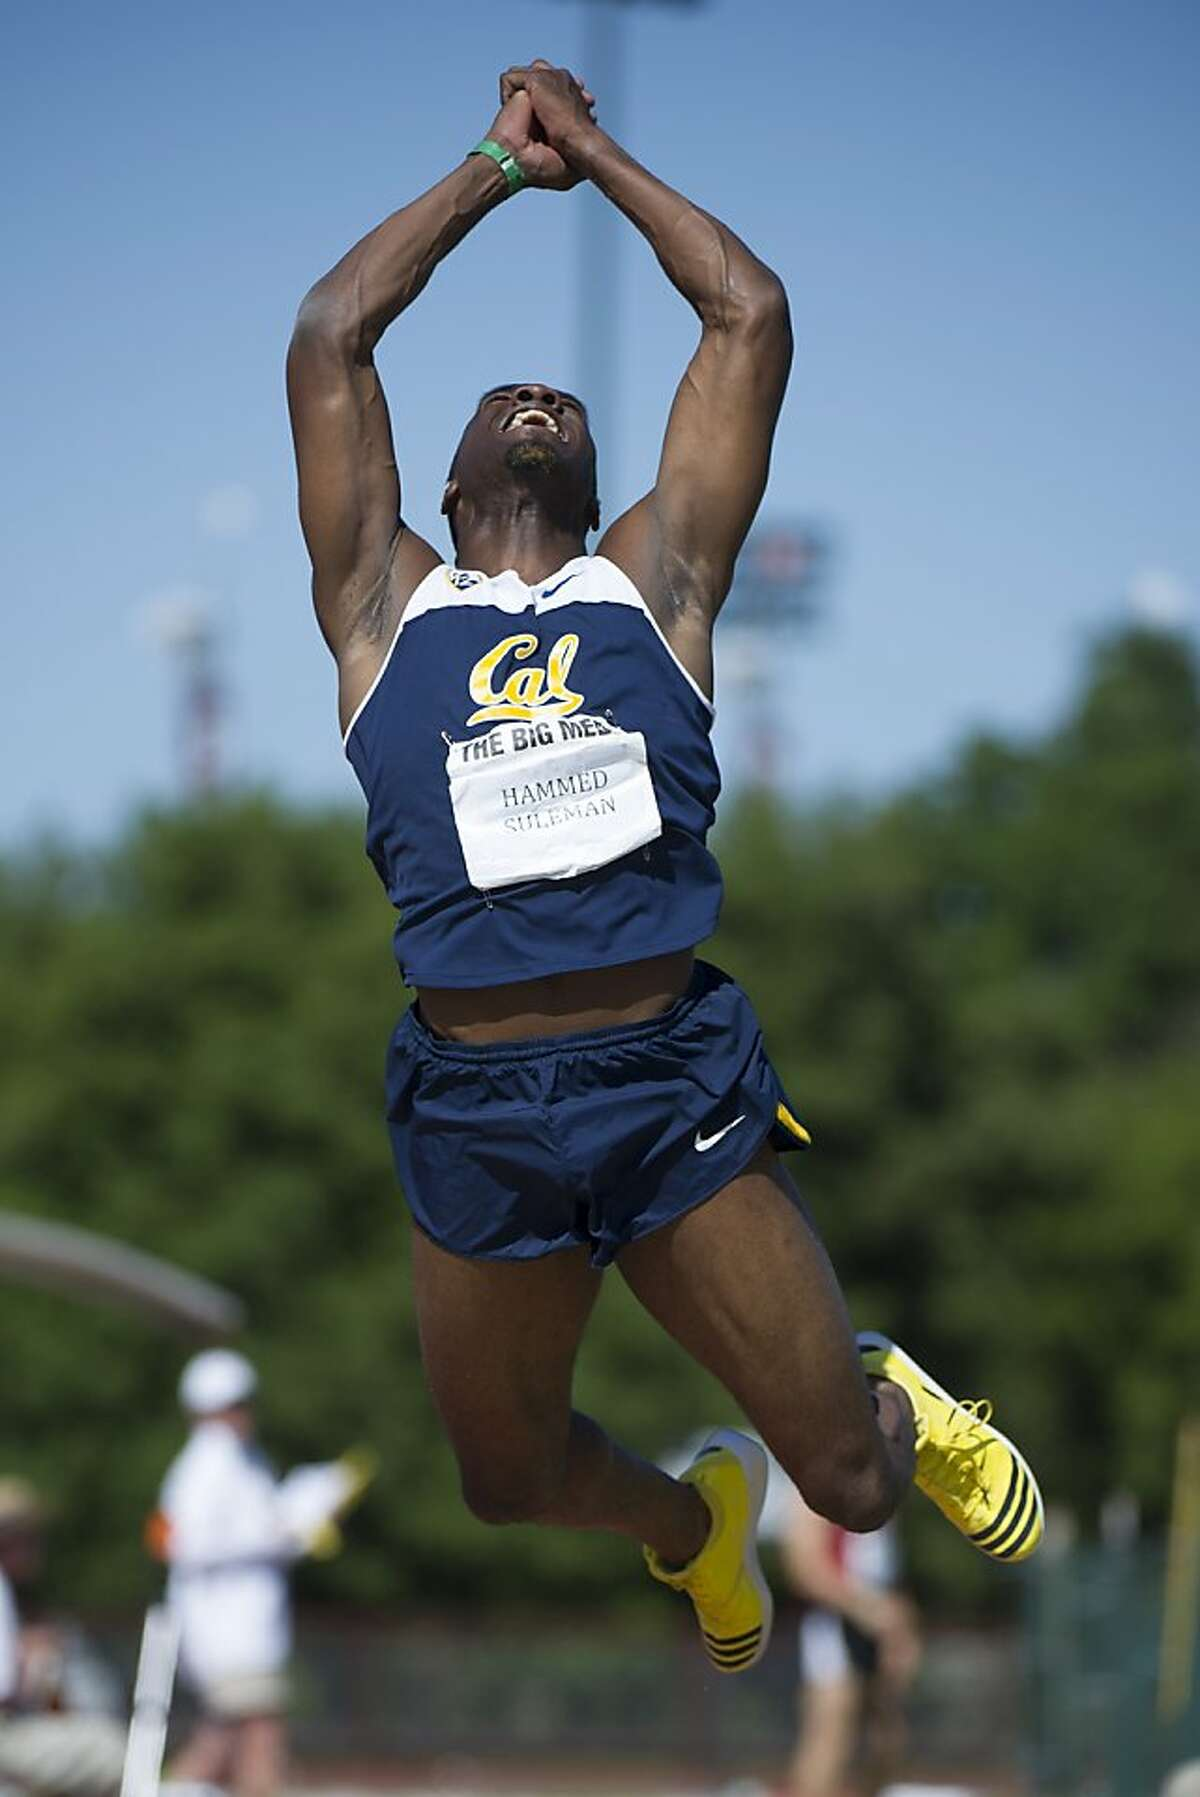 Hammed Suleman of Cal competes in the Men's triple jump during the 118th Big Meet Cal vs Stanford at Stanford University in Stanford, Calif. on April 20,2013.